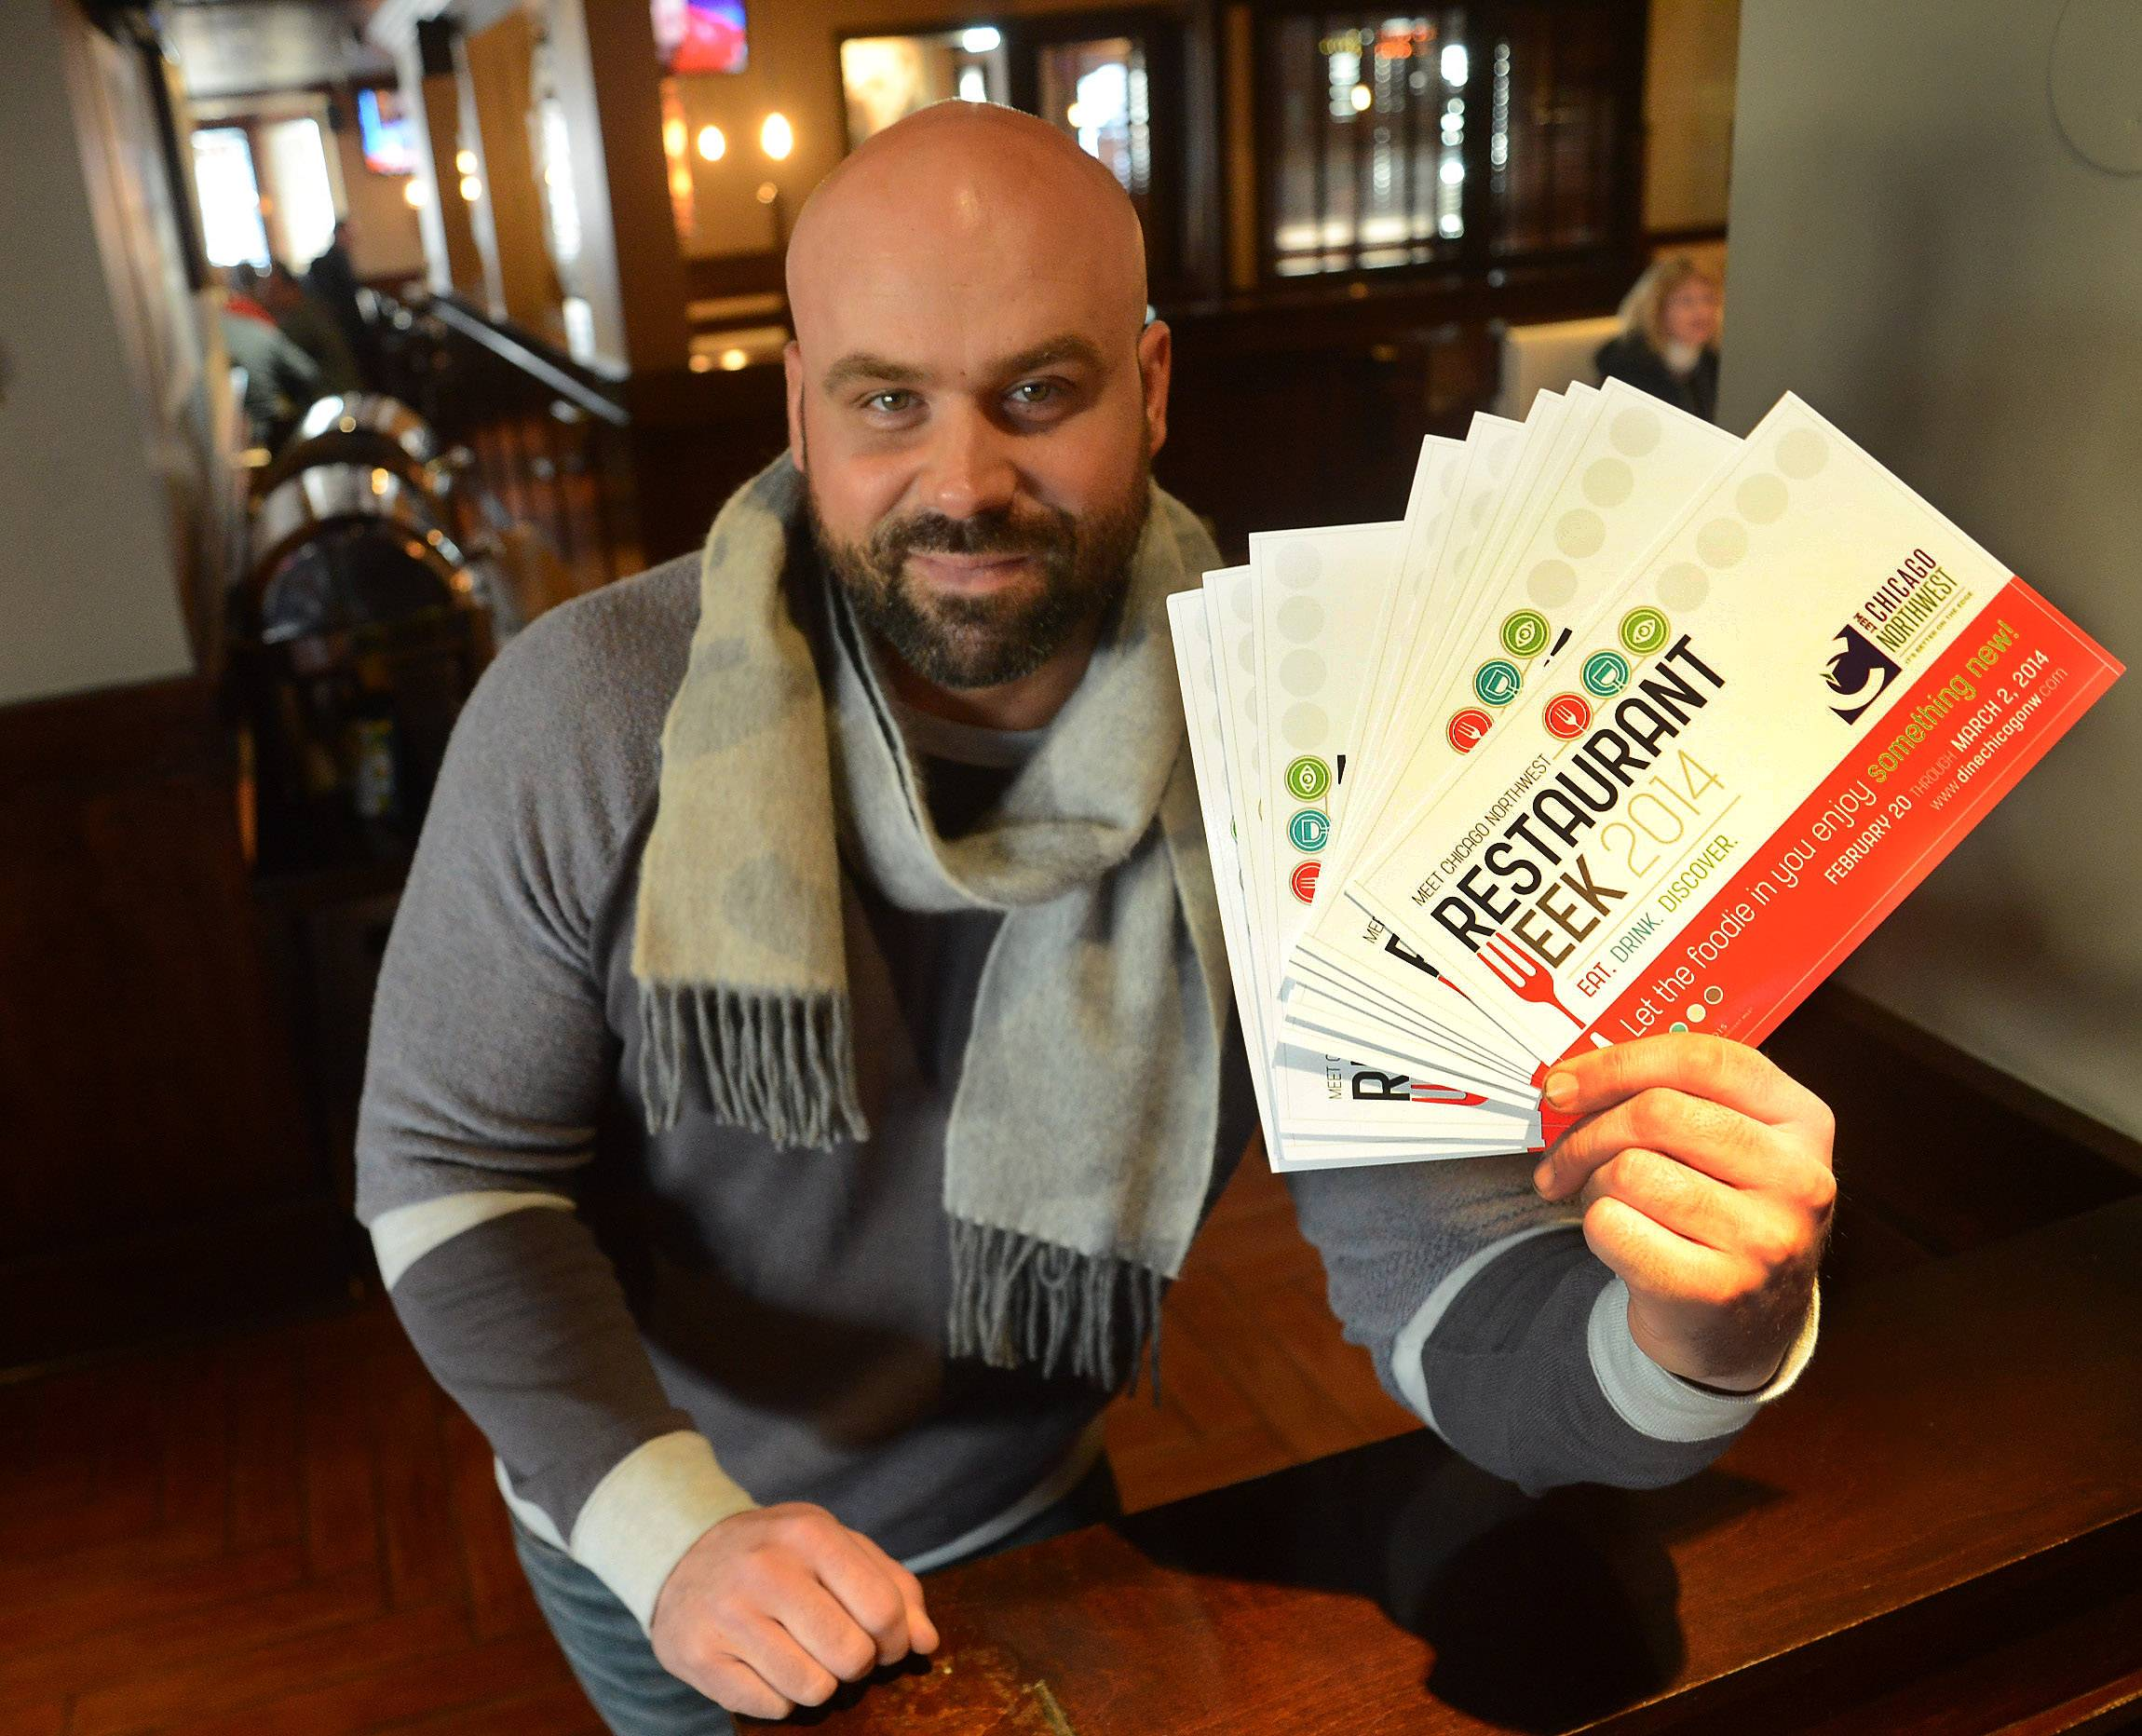 Owner Luke Johnson of the Rack House in Arlington Heights holds up Restaurant Week fliers.